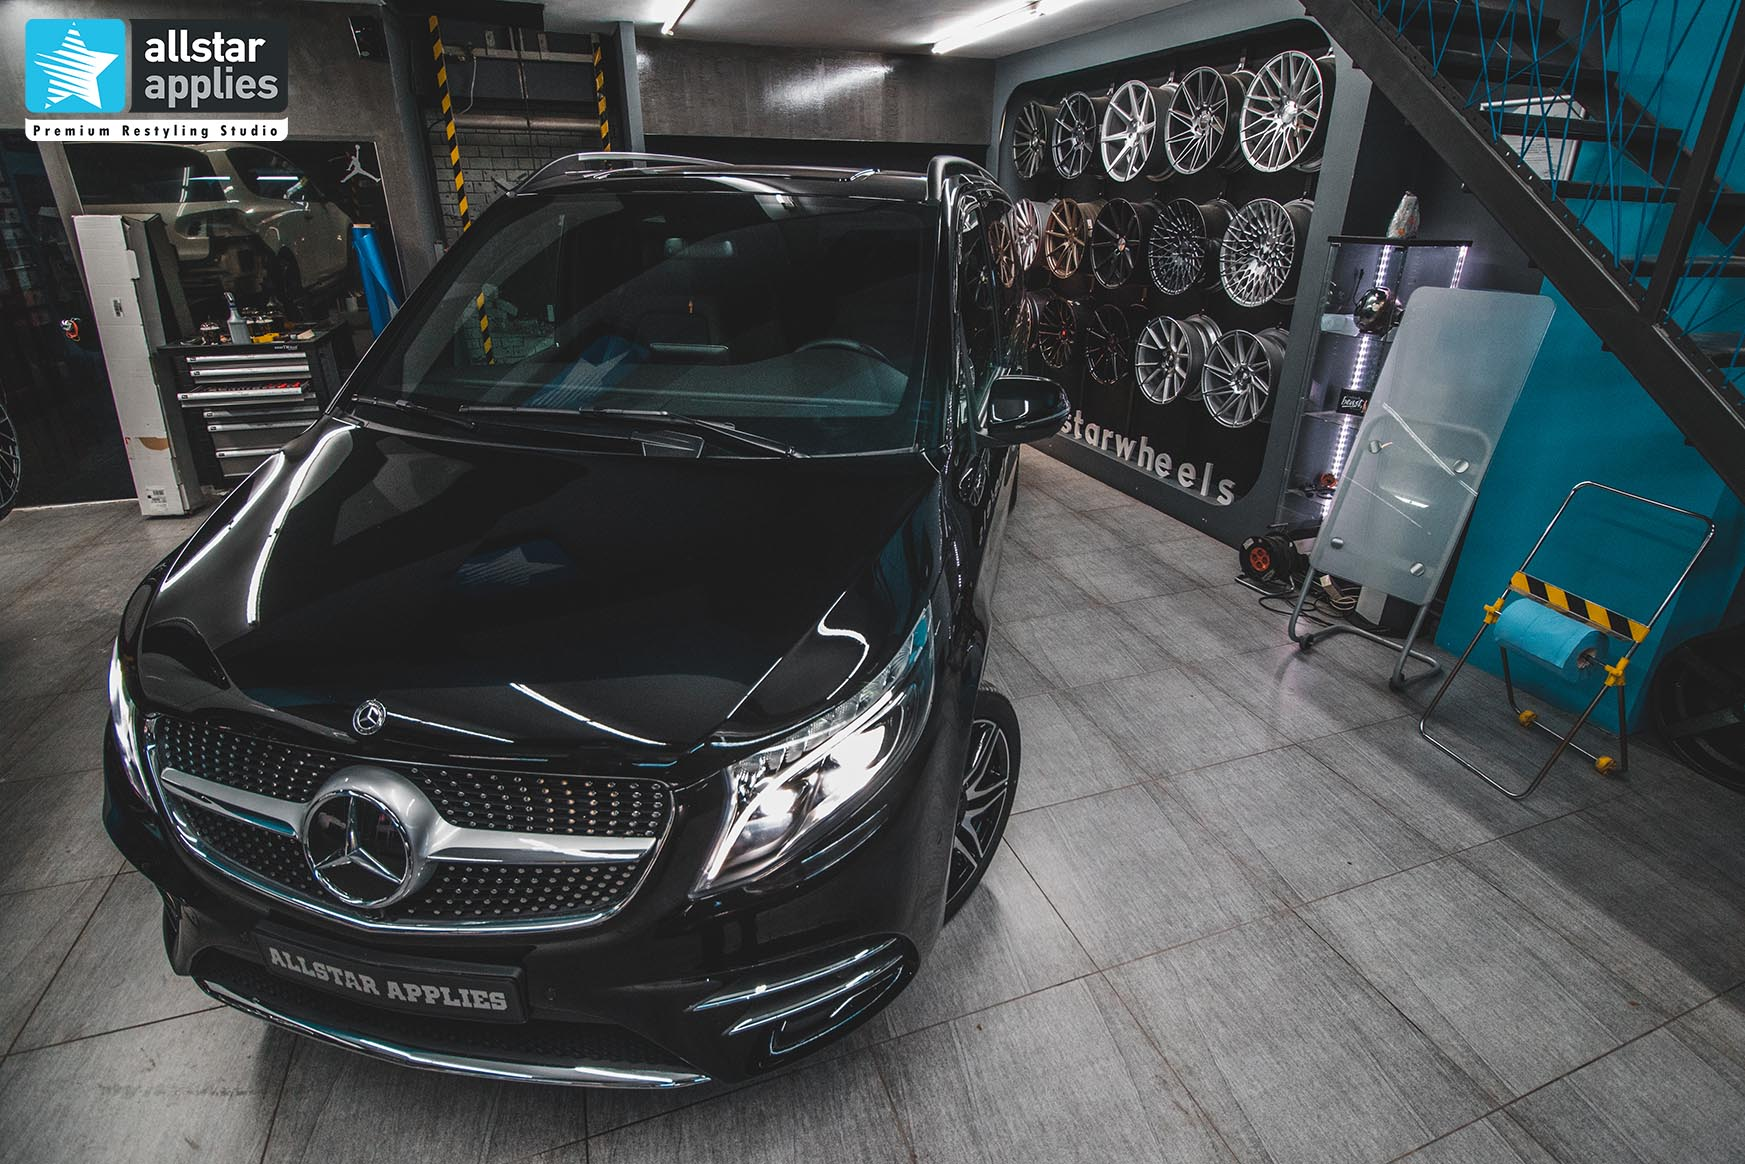 MERCEDES-BENZ V-CLASS PPF FRONT PACKAGE 7